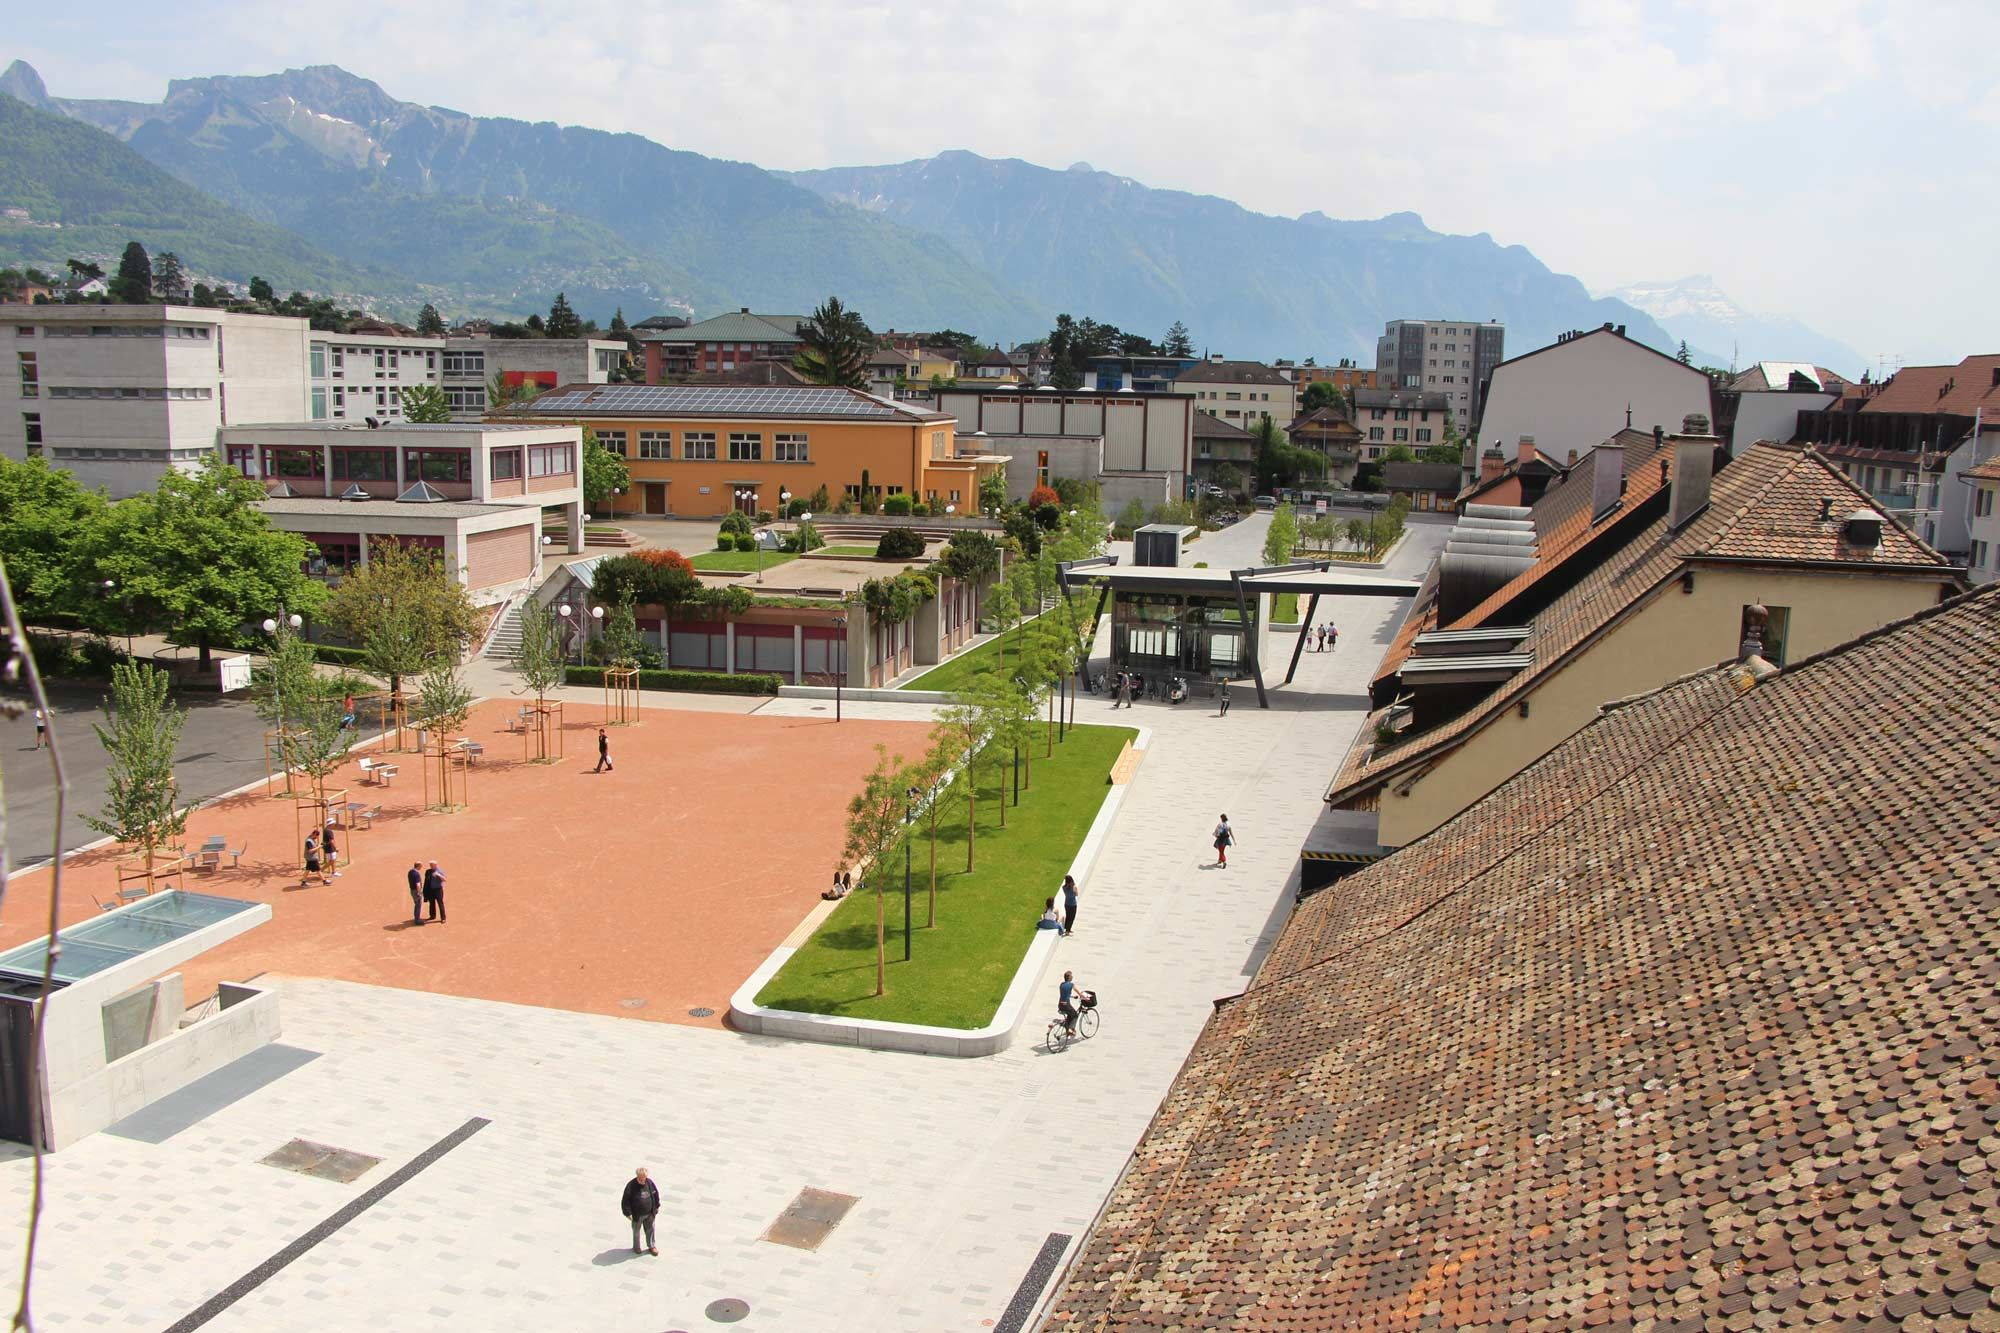 Contemporary Landscape Architecture Projects town-square-park-landscape-architecture-01 « landscape